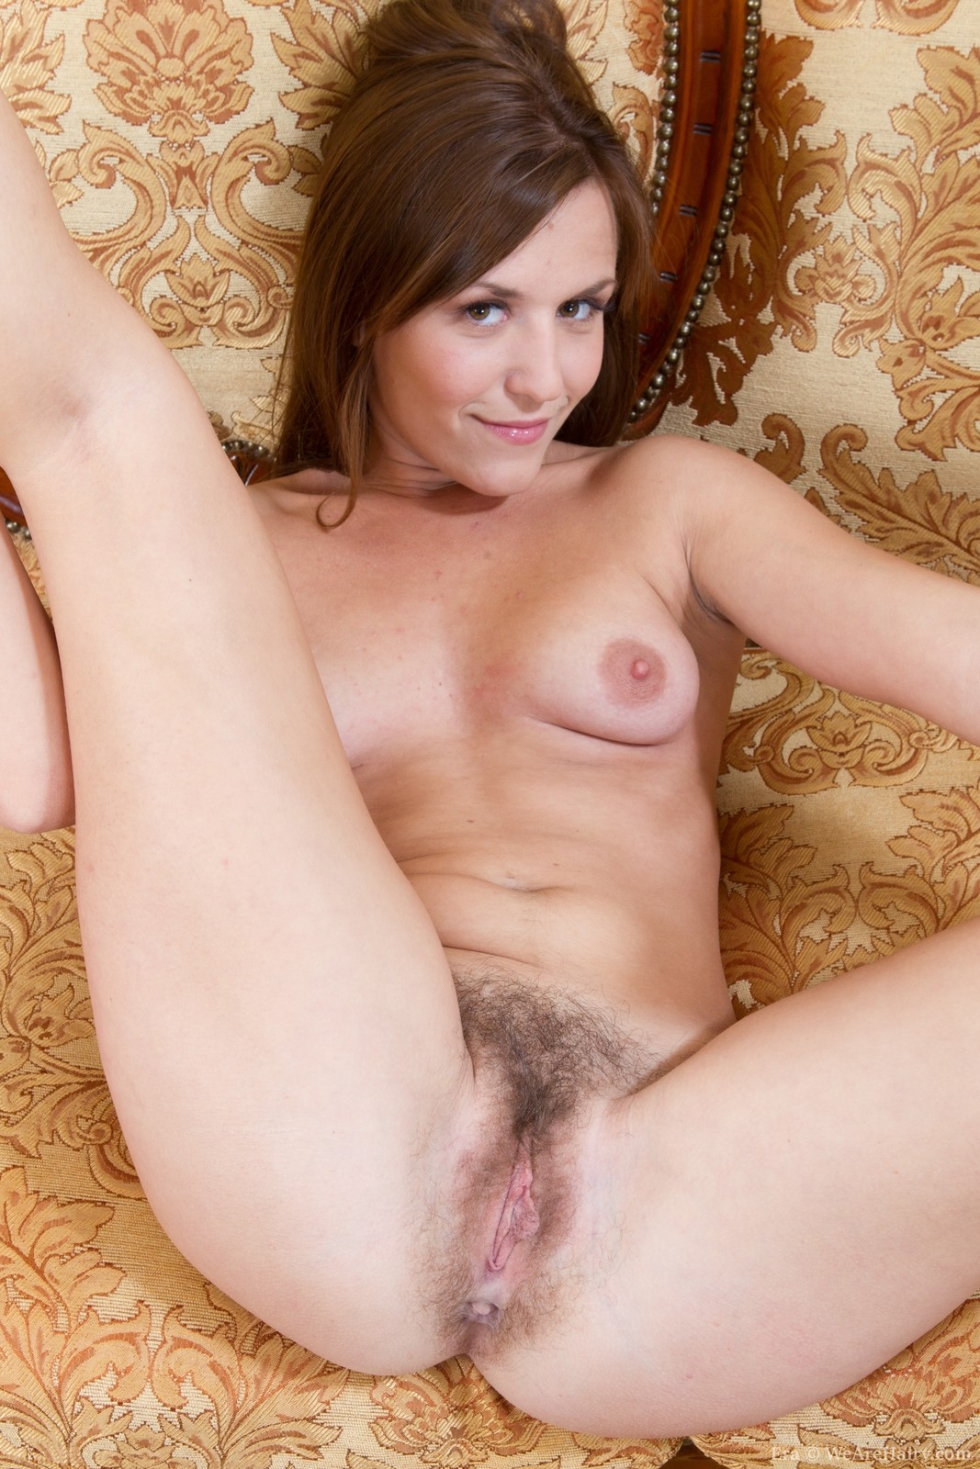 Hairy nude female photos